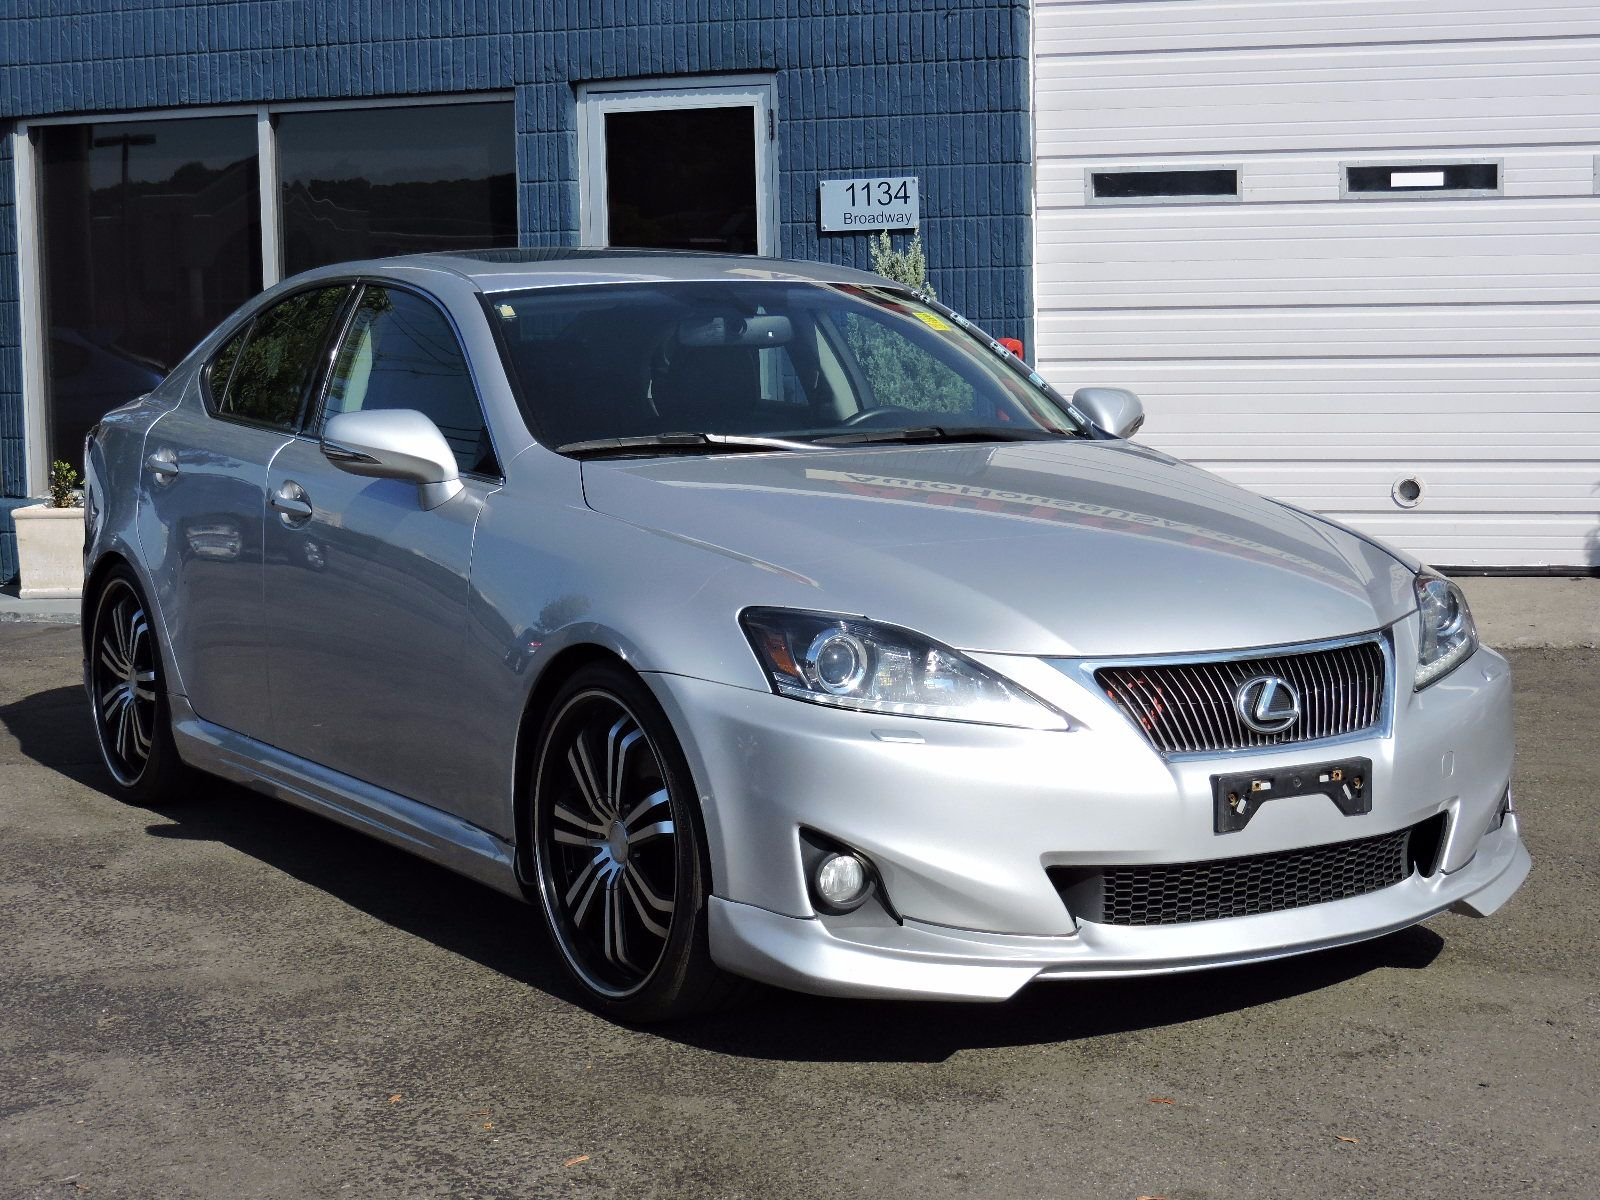 2011 Lexus IS 350 - All Wheel Drive - Navigation